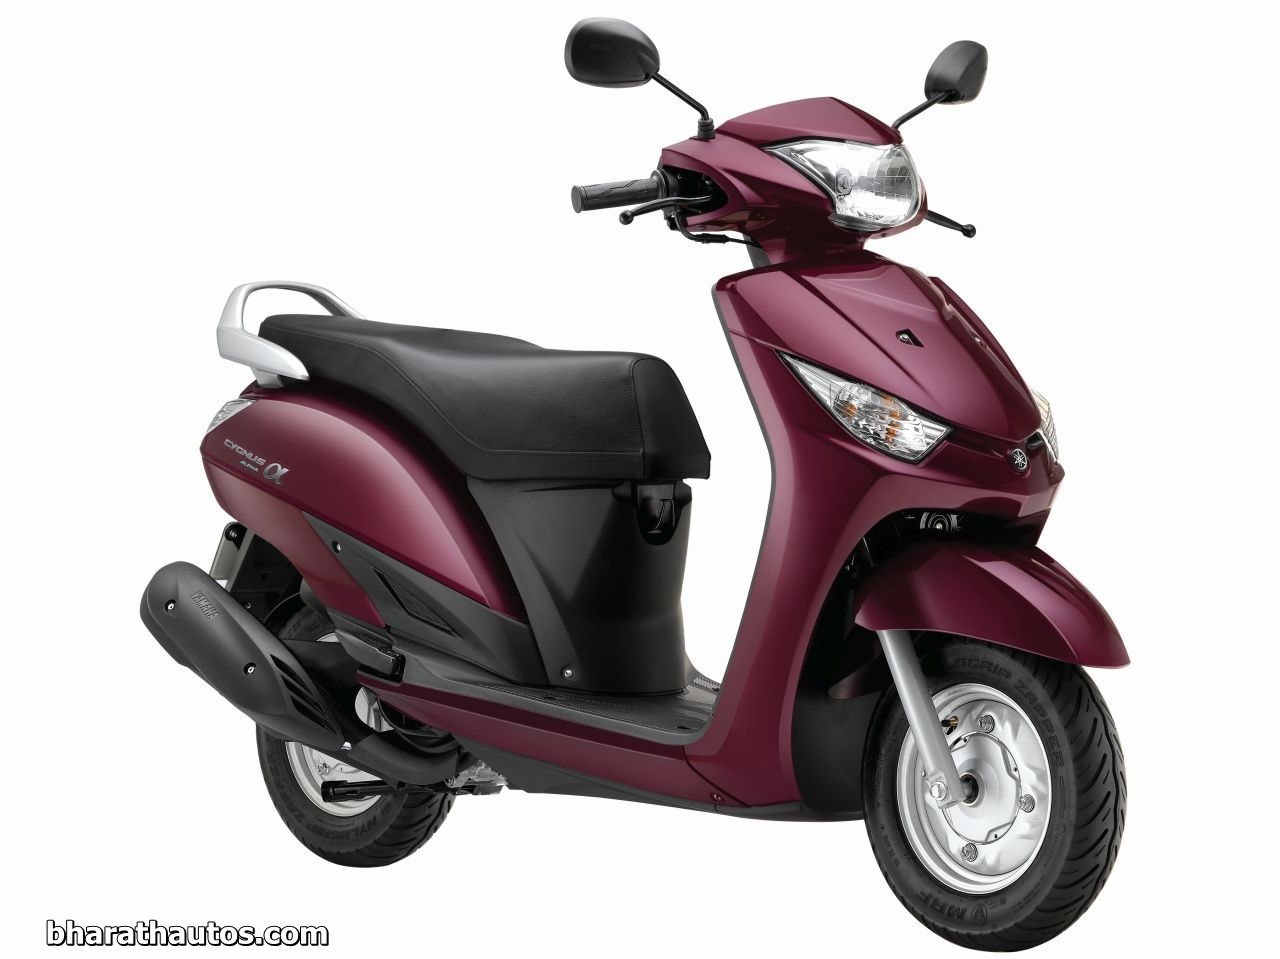 Ray Price Honda >> 2014 Auto Expo - Yamaha Alpha 110 scooter officially launched at Rs. 49,518/-